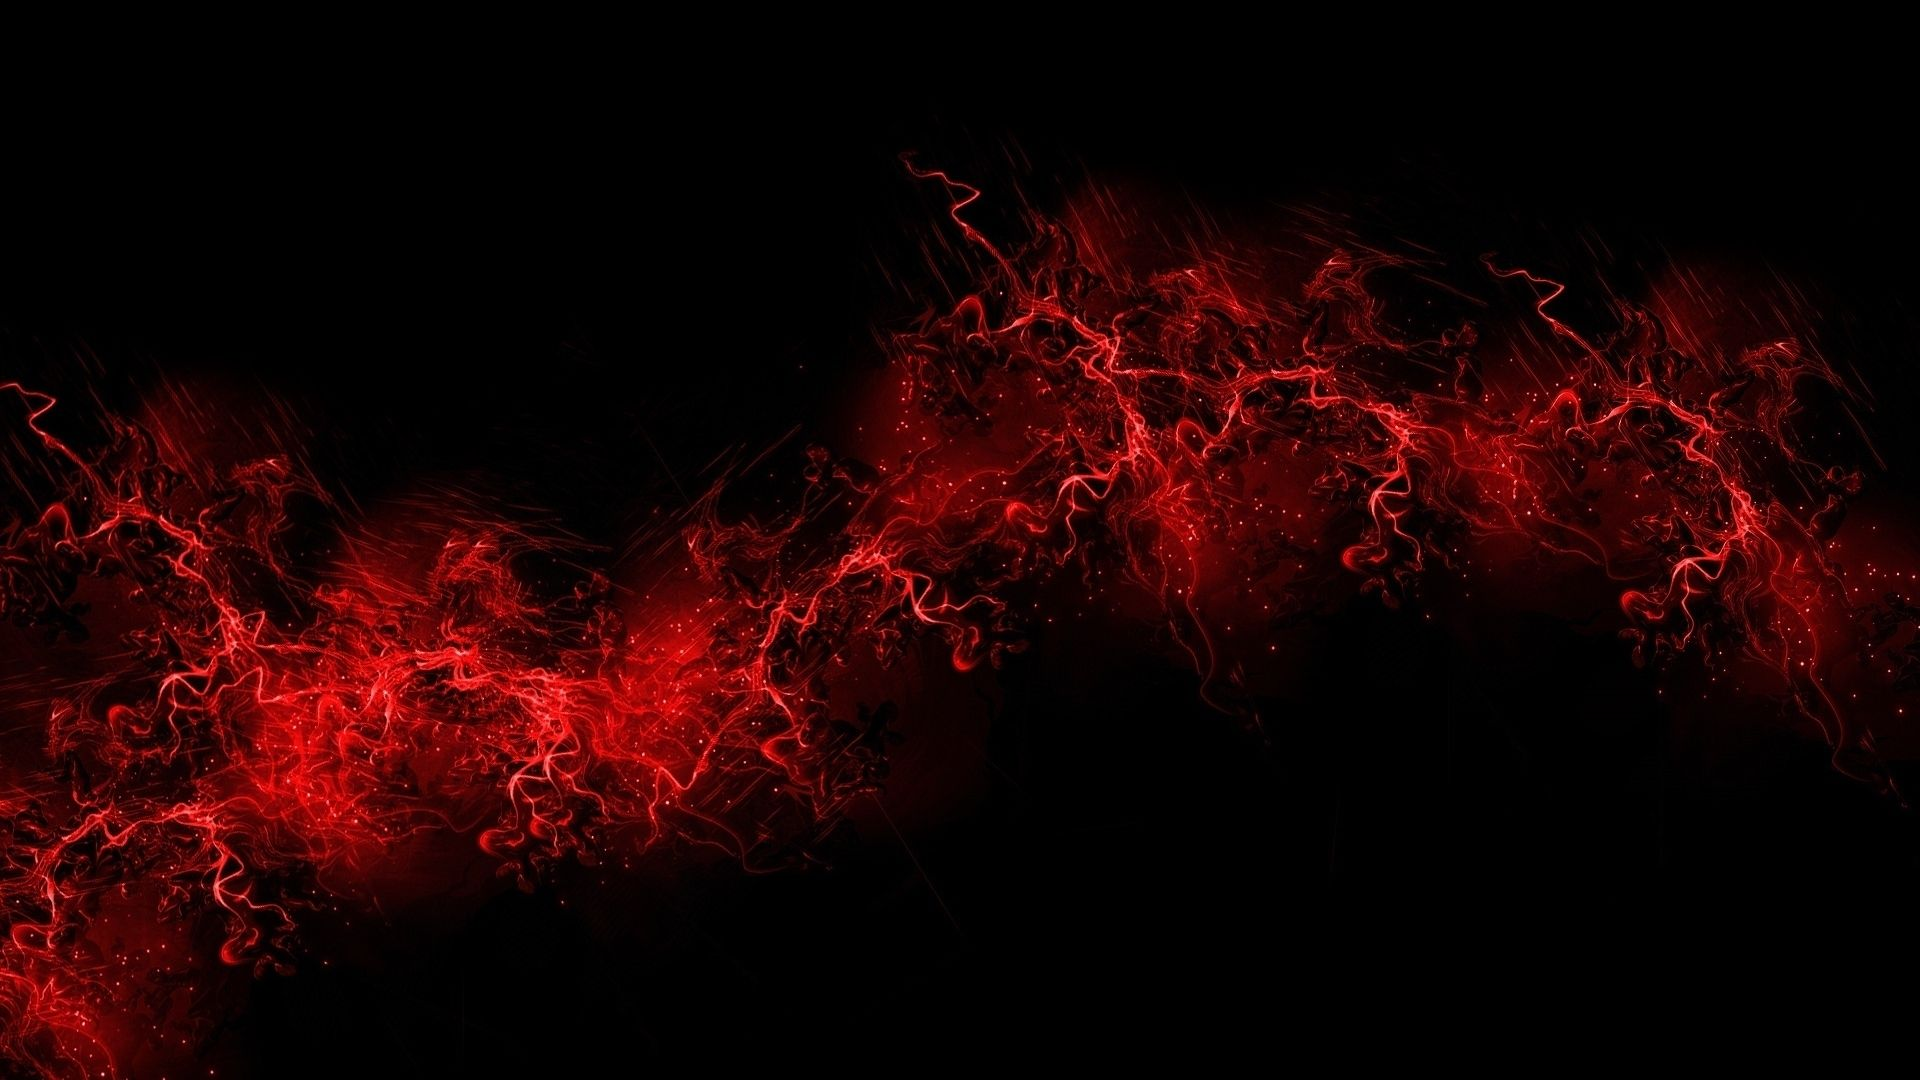 10 Latest Red Black Desktop Wallpaper Full Hd 1920 1080 For Pc Background Red And Black Wallpaper Red Wallpaper Black Background Wallpaper